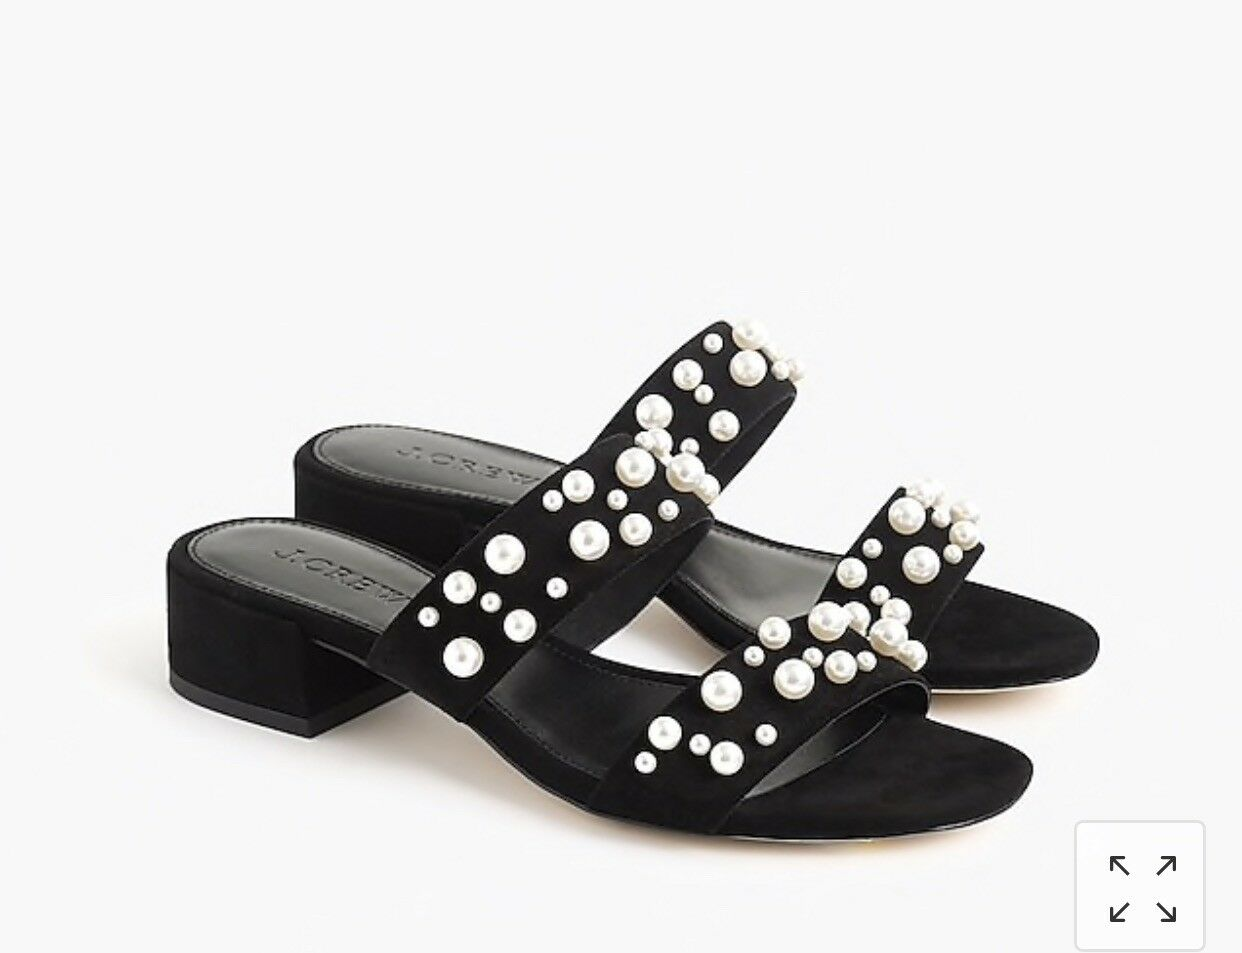 J.Crew Double-strap suede slides with pearls, Black, size 8, NIB